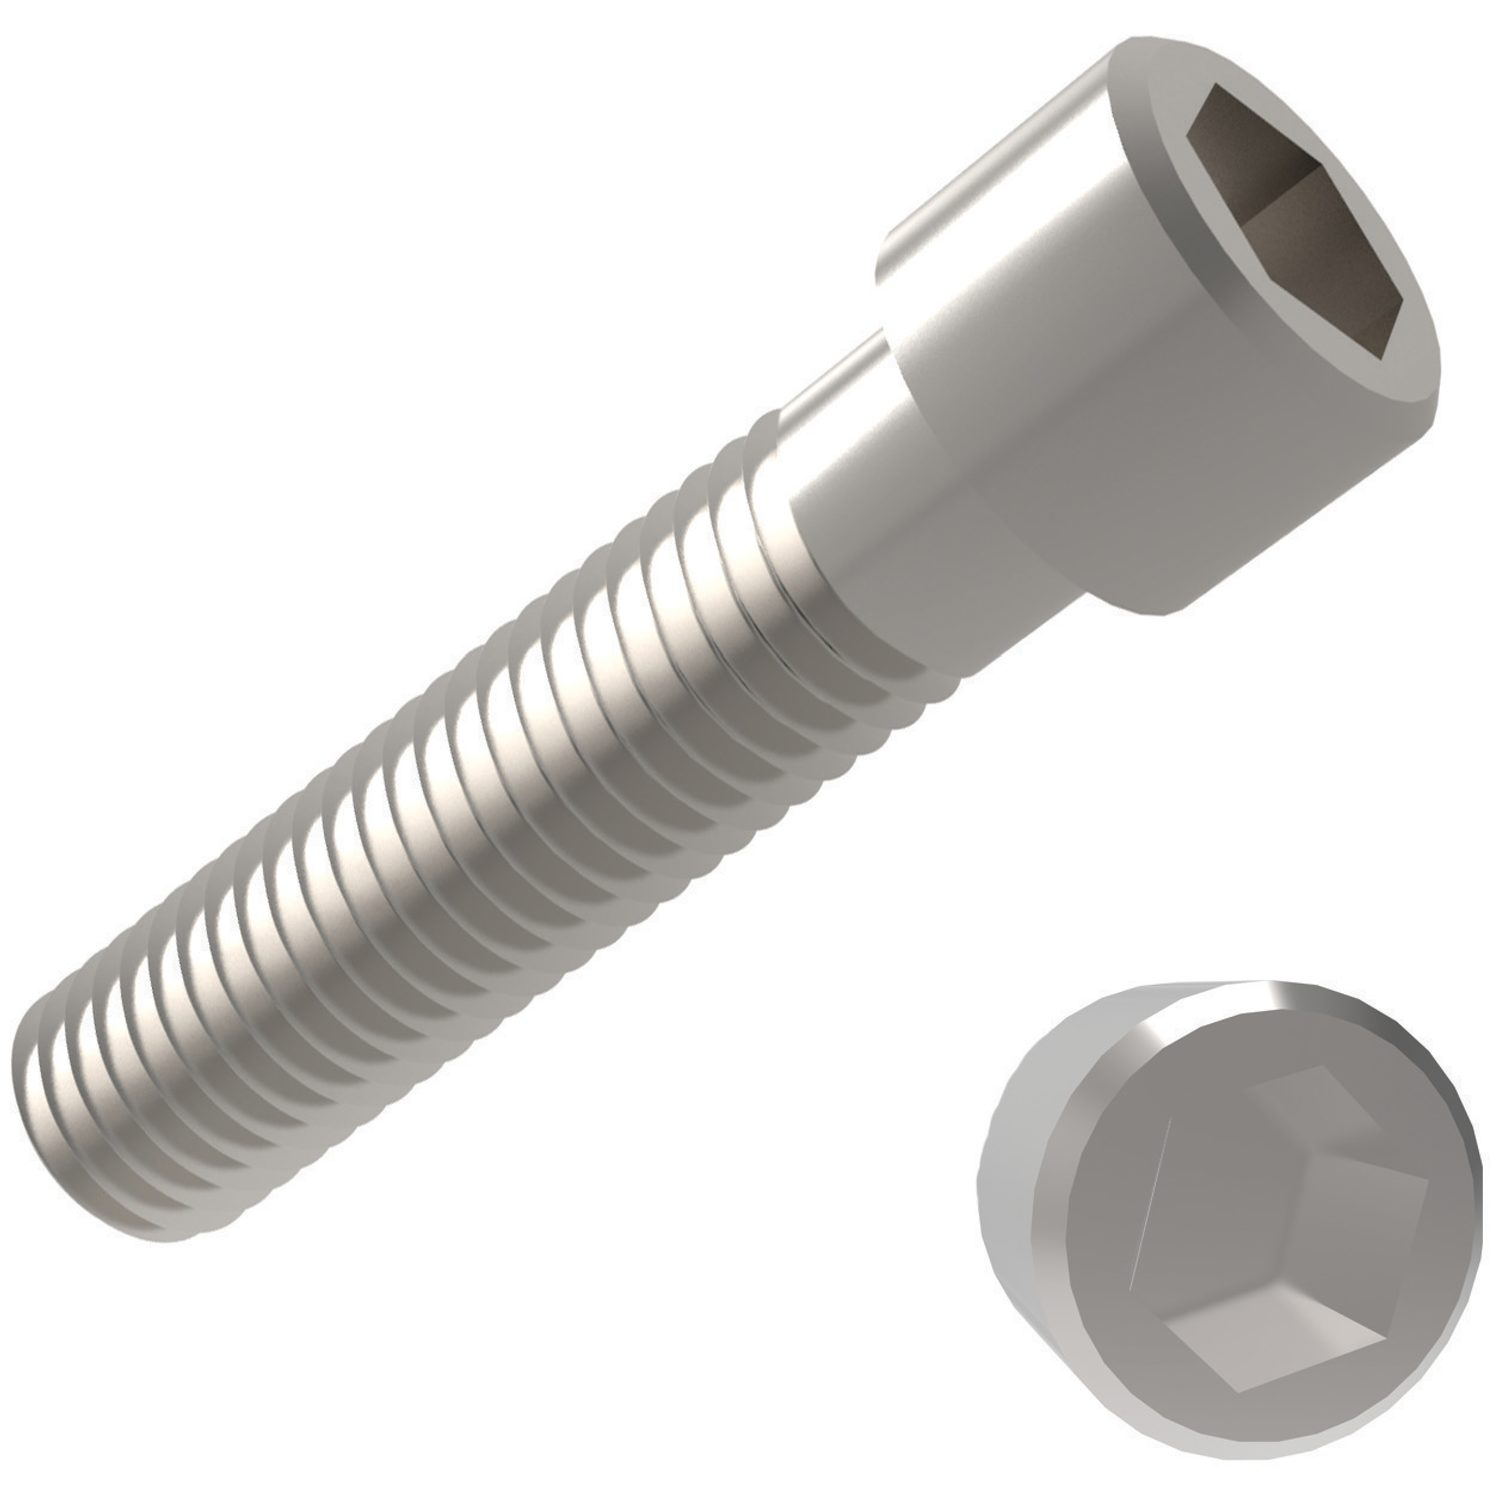 P0200.A2 - Socket Cap Screws